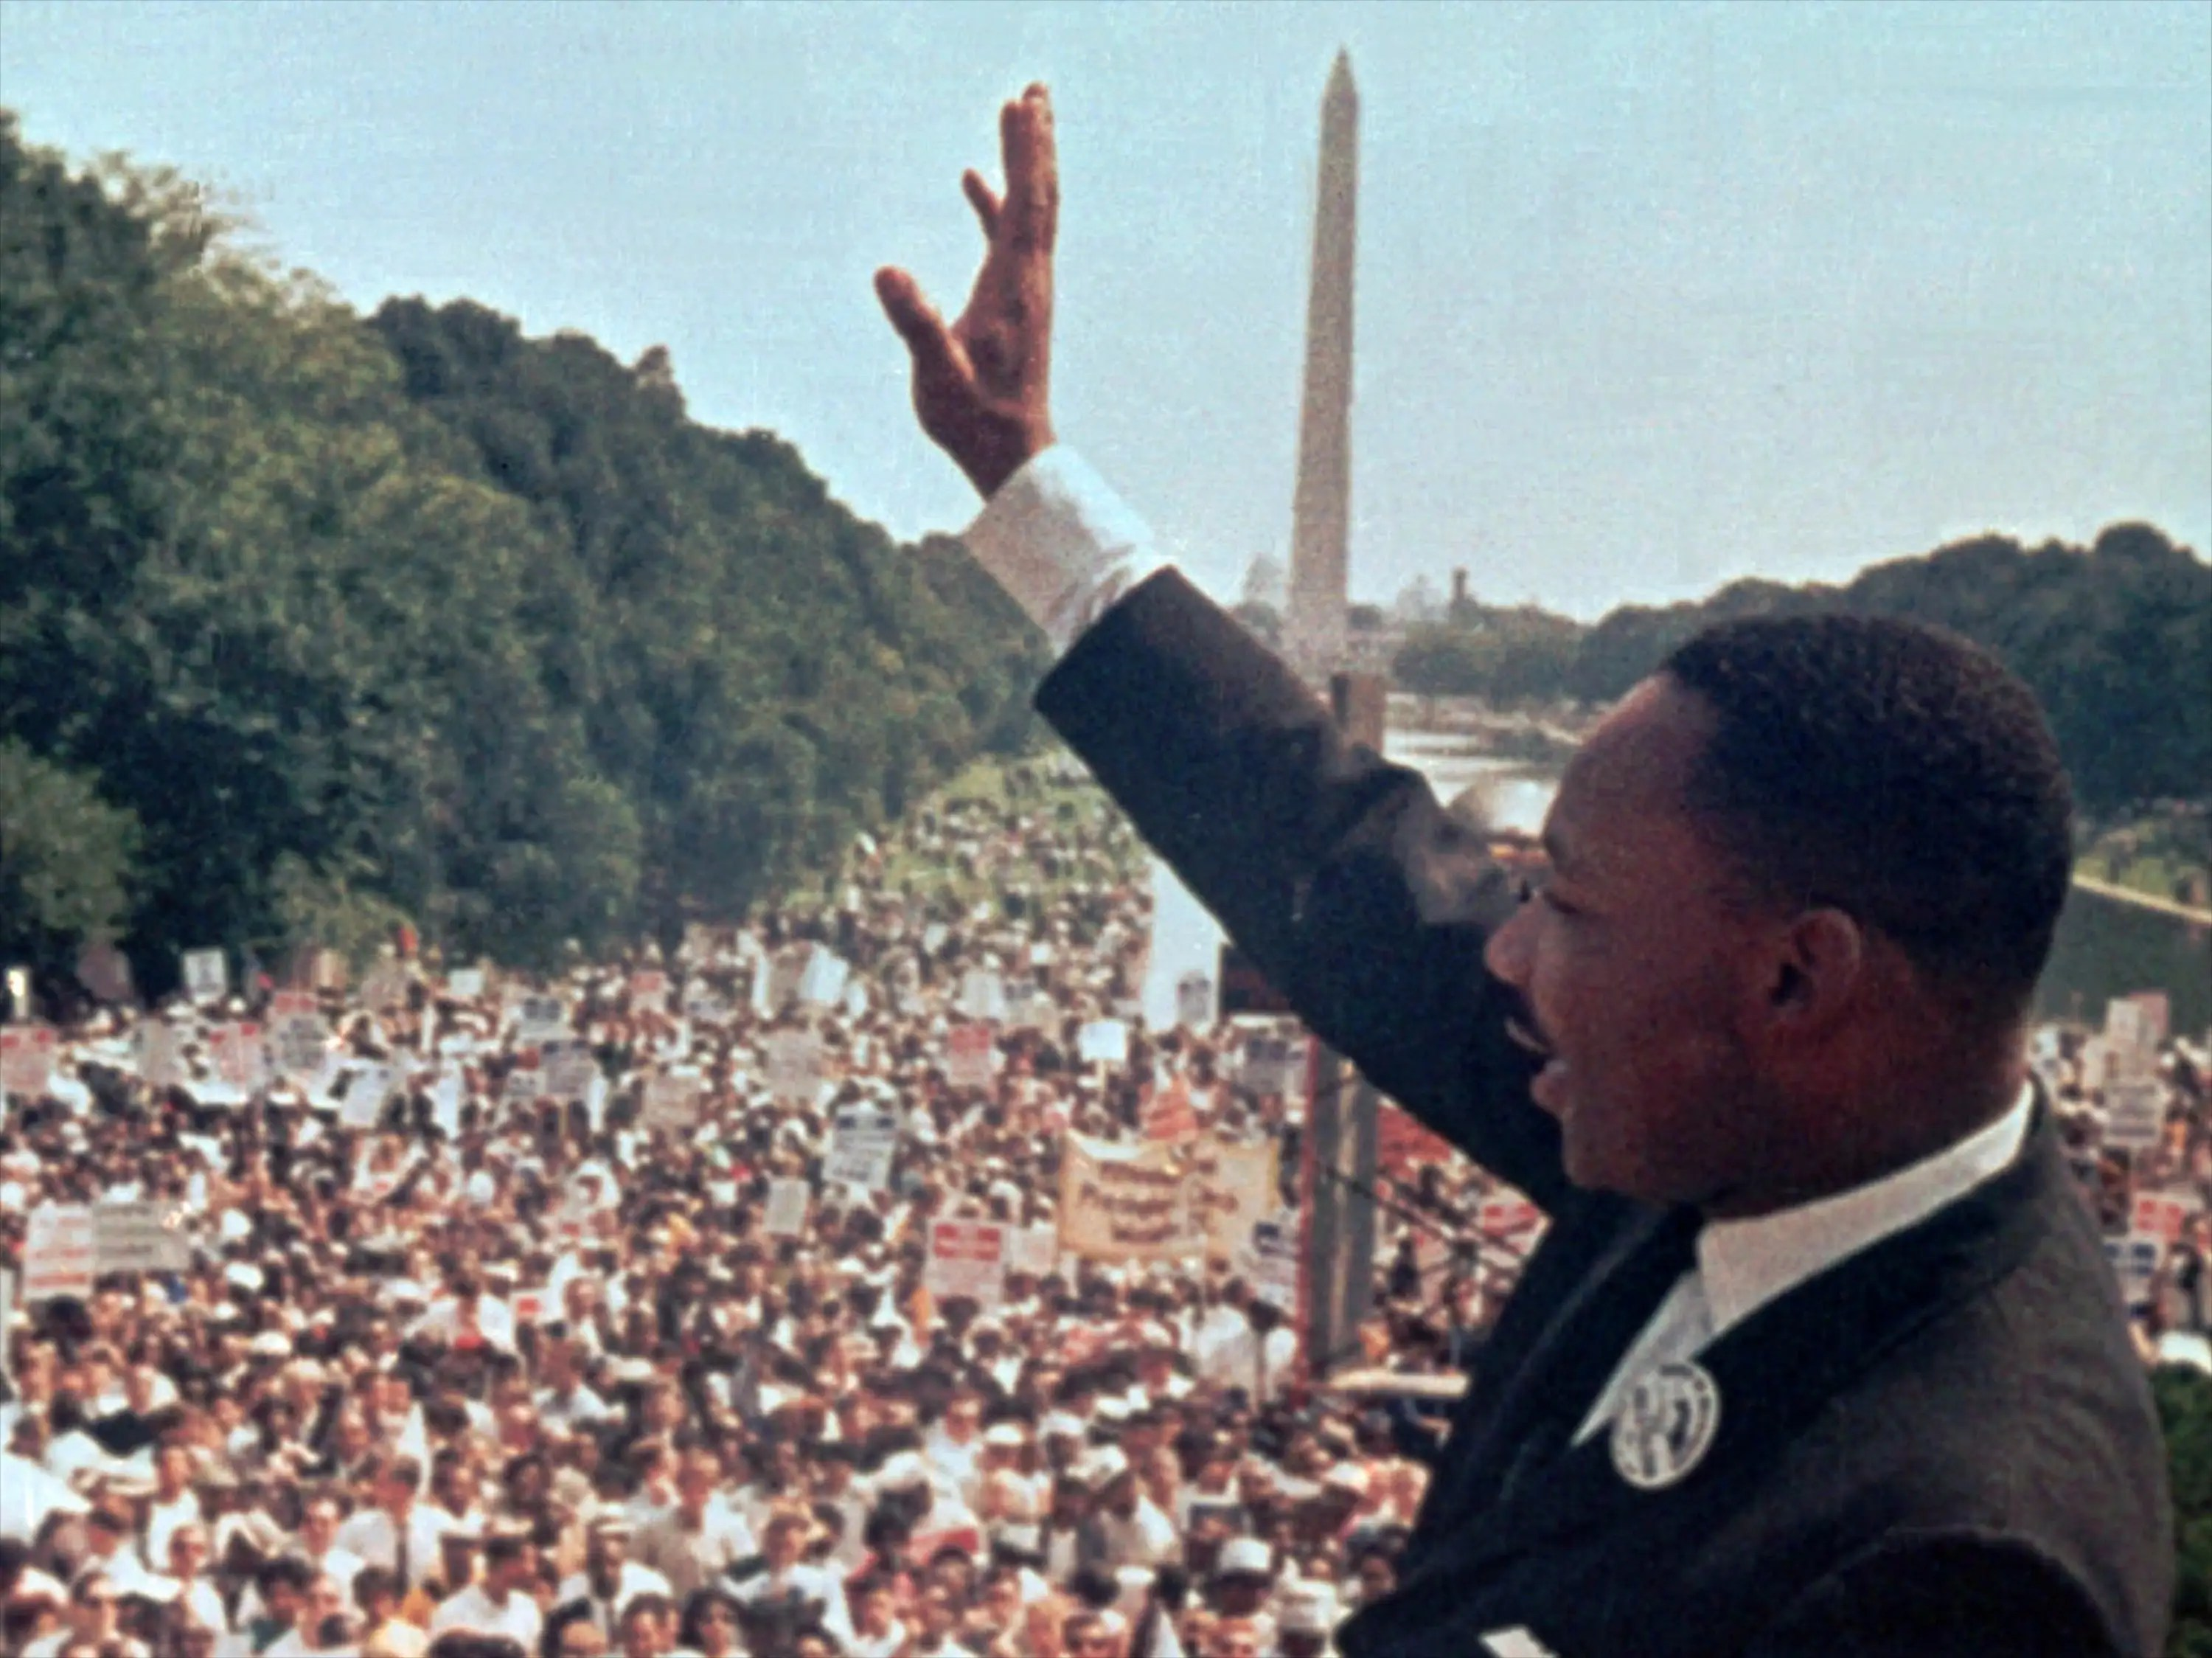 MLK, dream, Martin Luther King Jr., civil rights